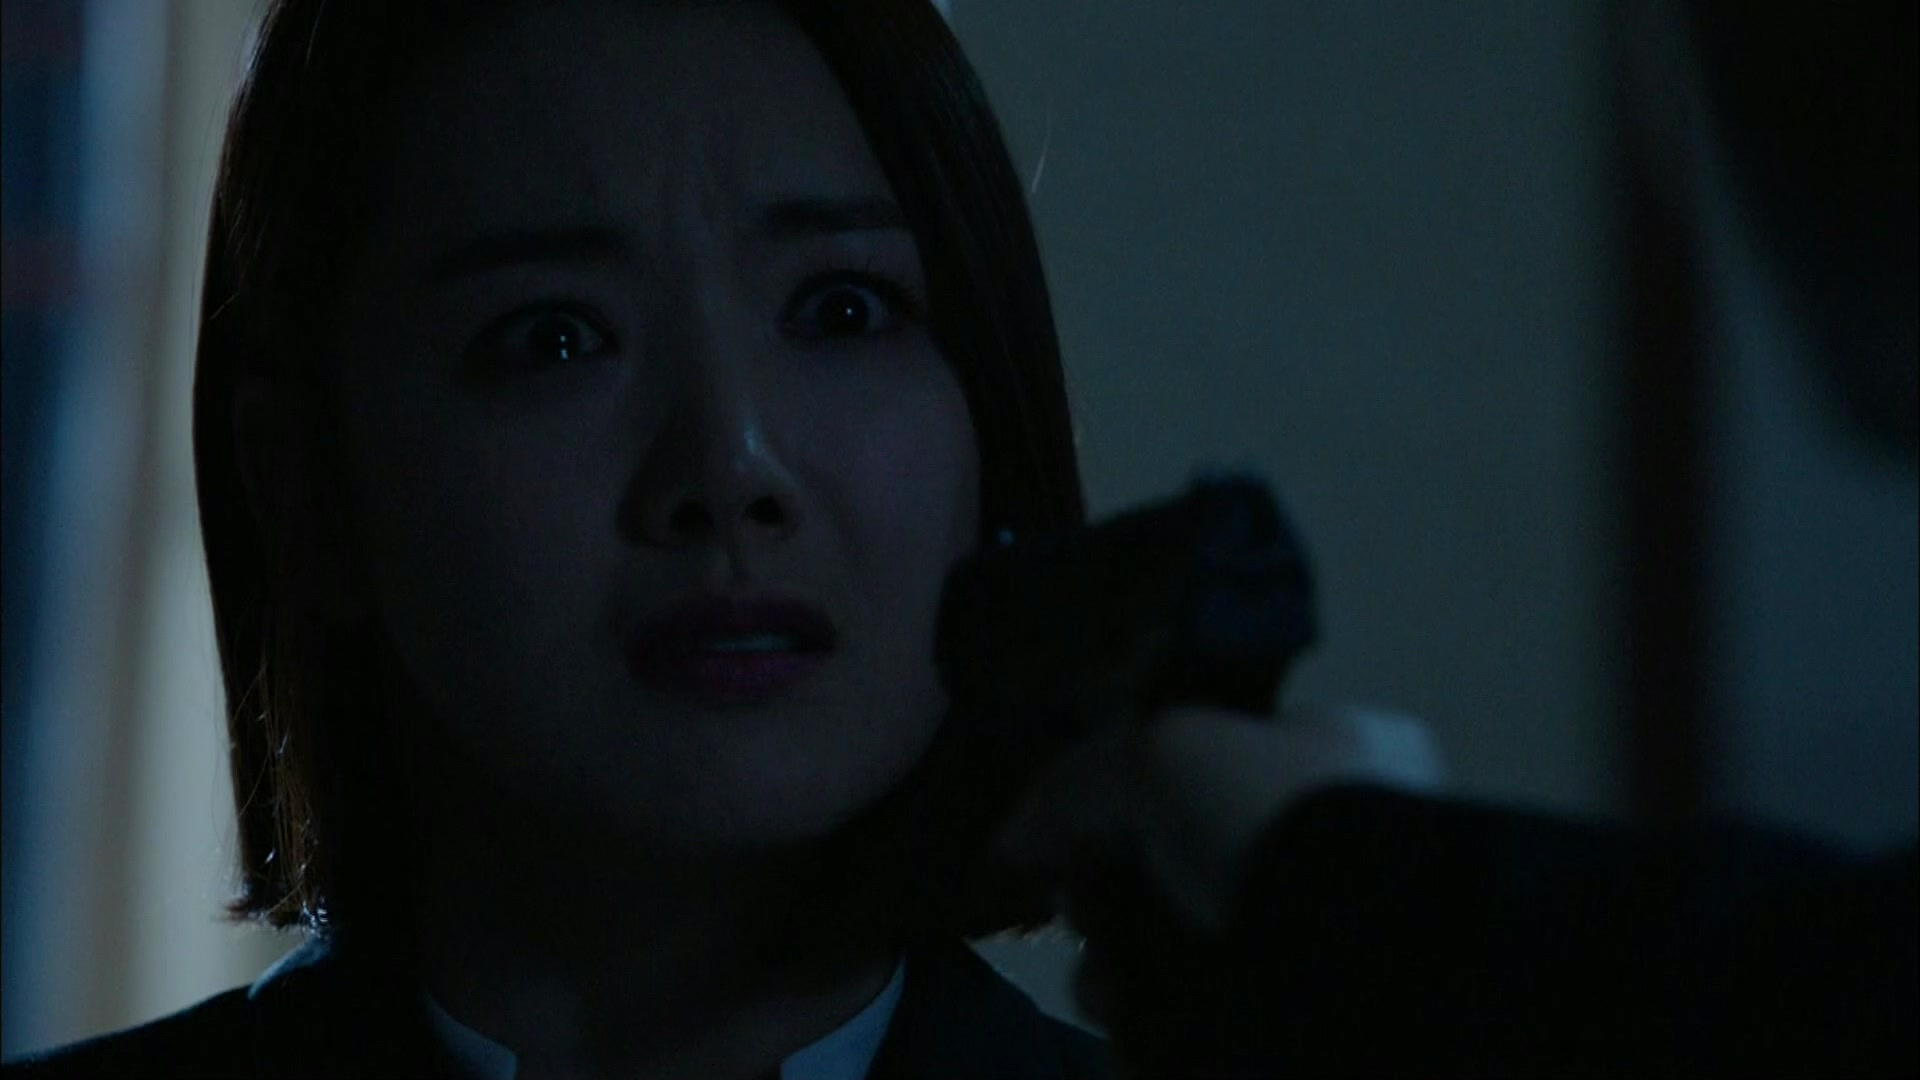 Three Days Episode 4